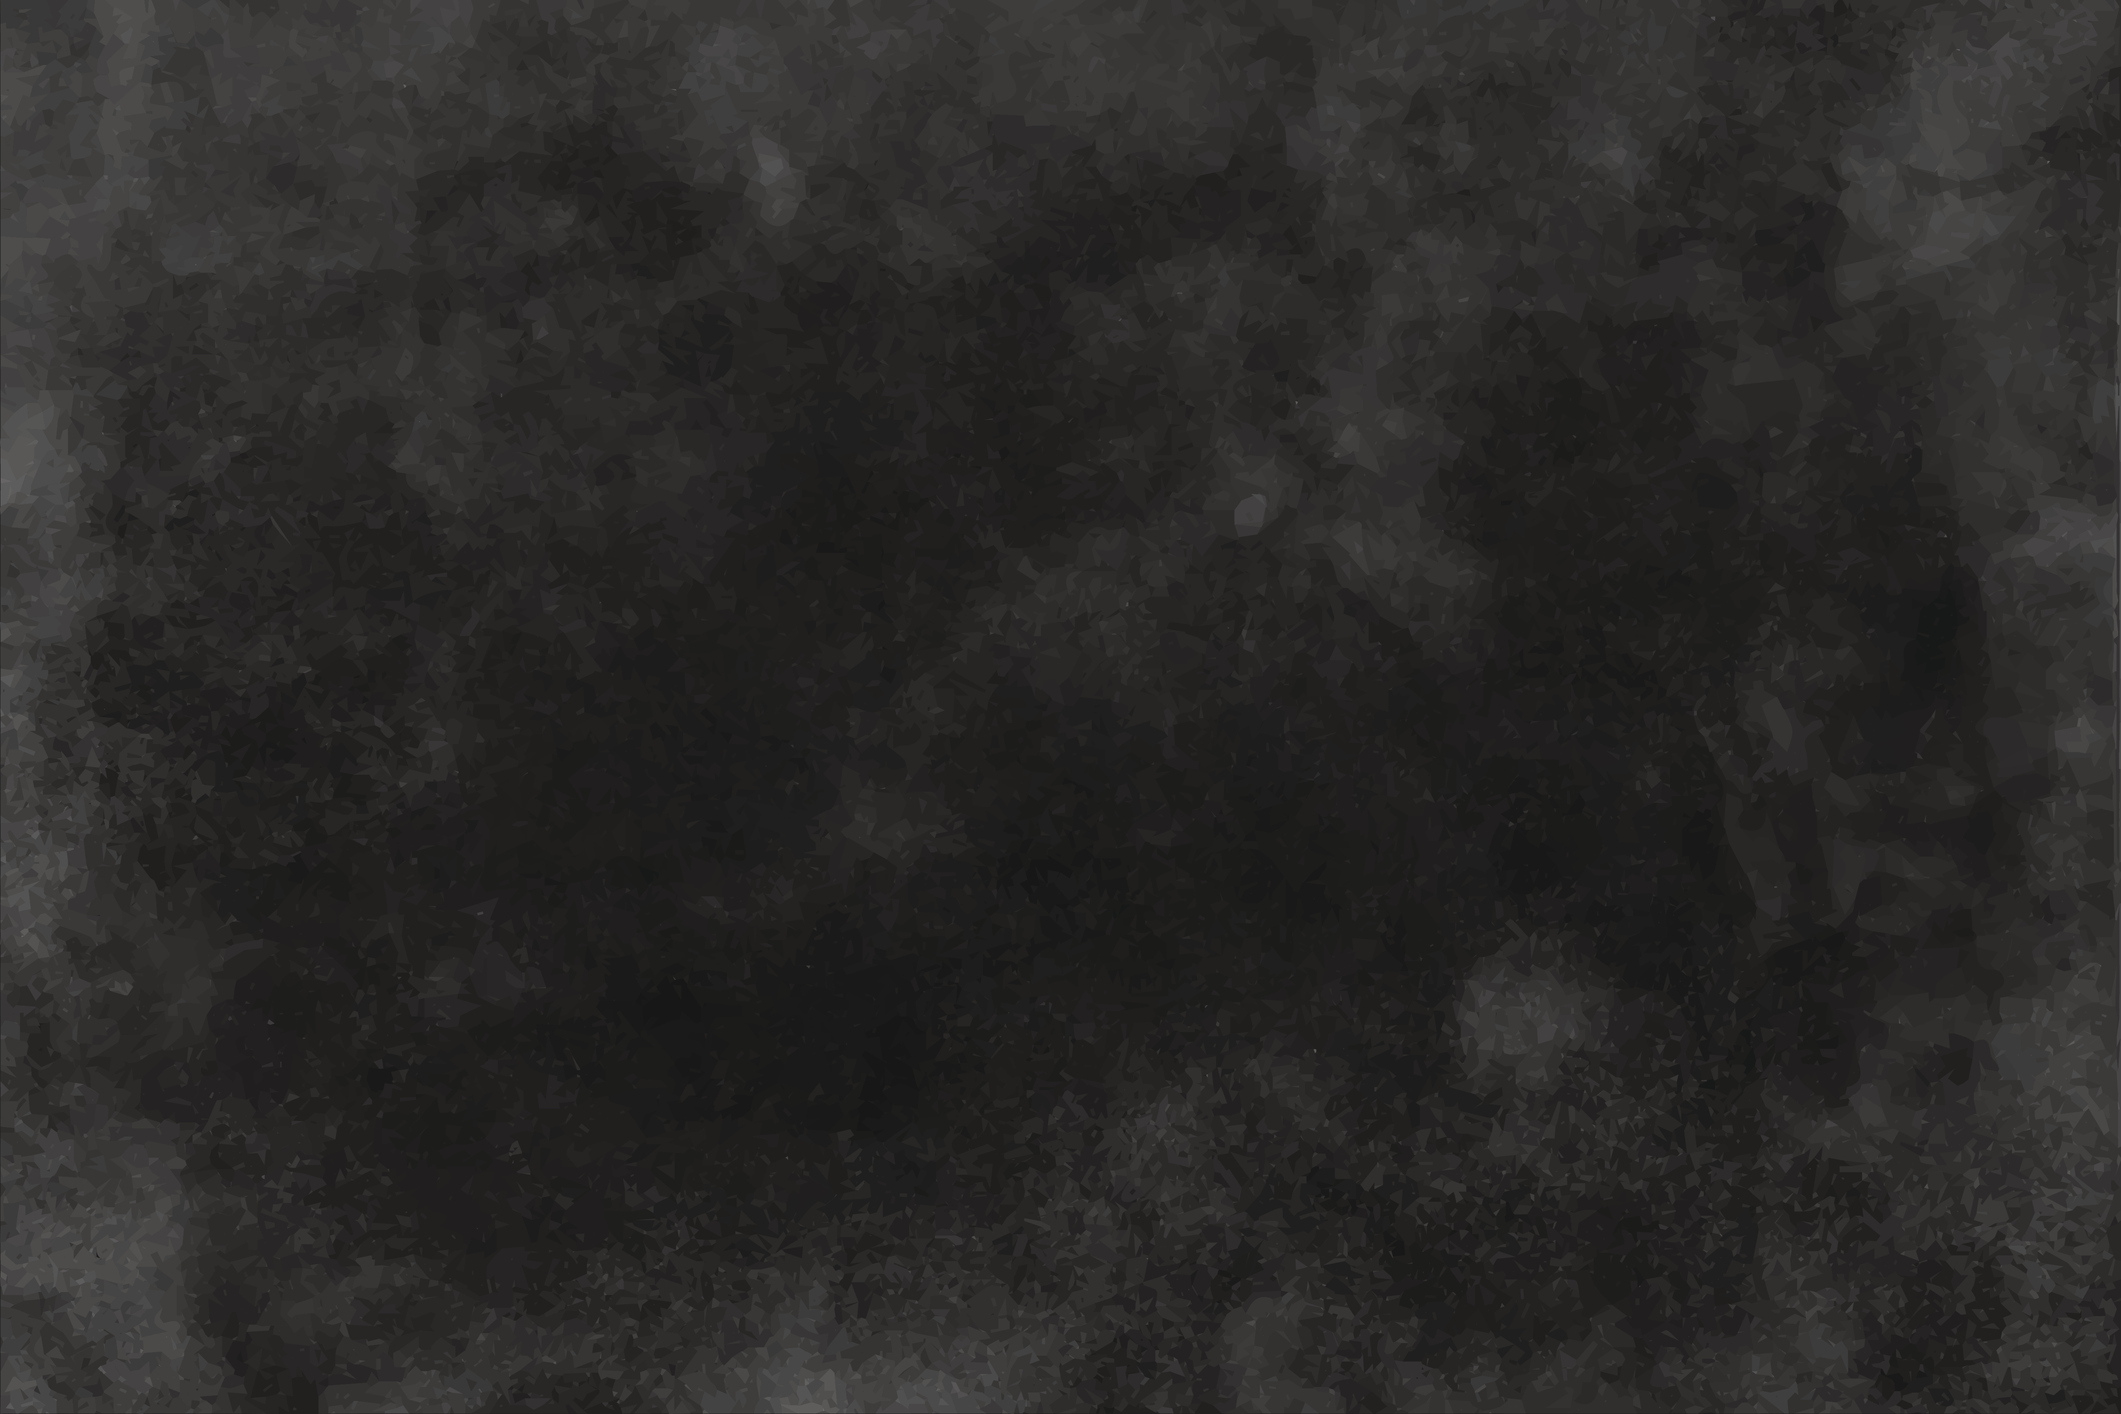 2121x1414 Black And Dark Gray Watercolor Texture, Background